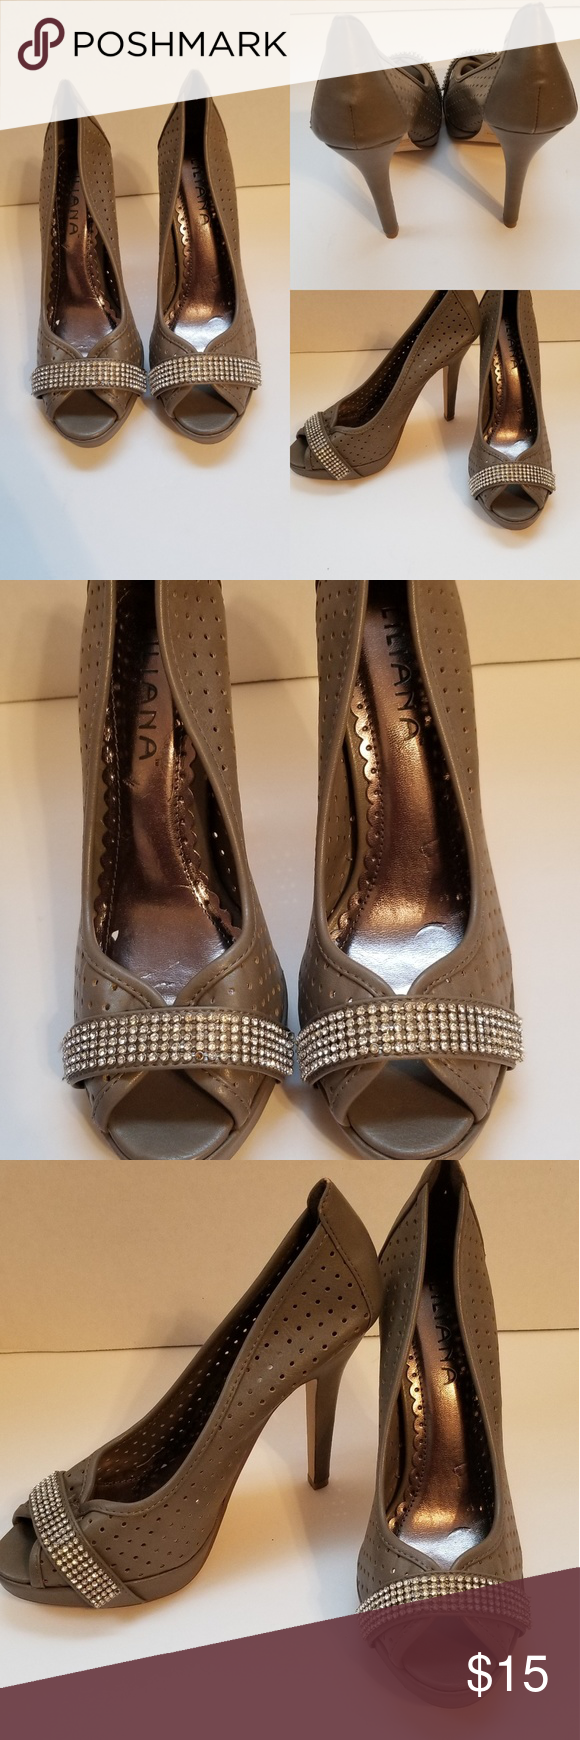 236942cdd83 Liliana gray heels Size 8.5 Diamond studded Grey 5 inch heel Small scuff on  the front Over all great condition Liliana Shoes Heels